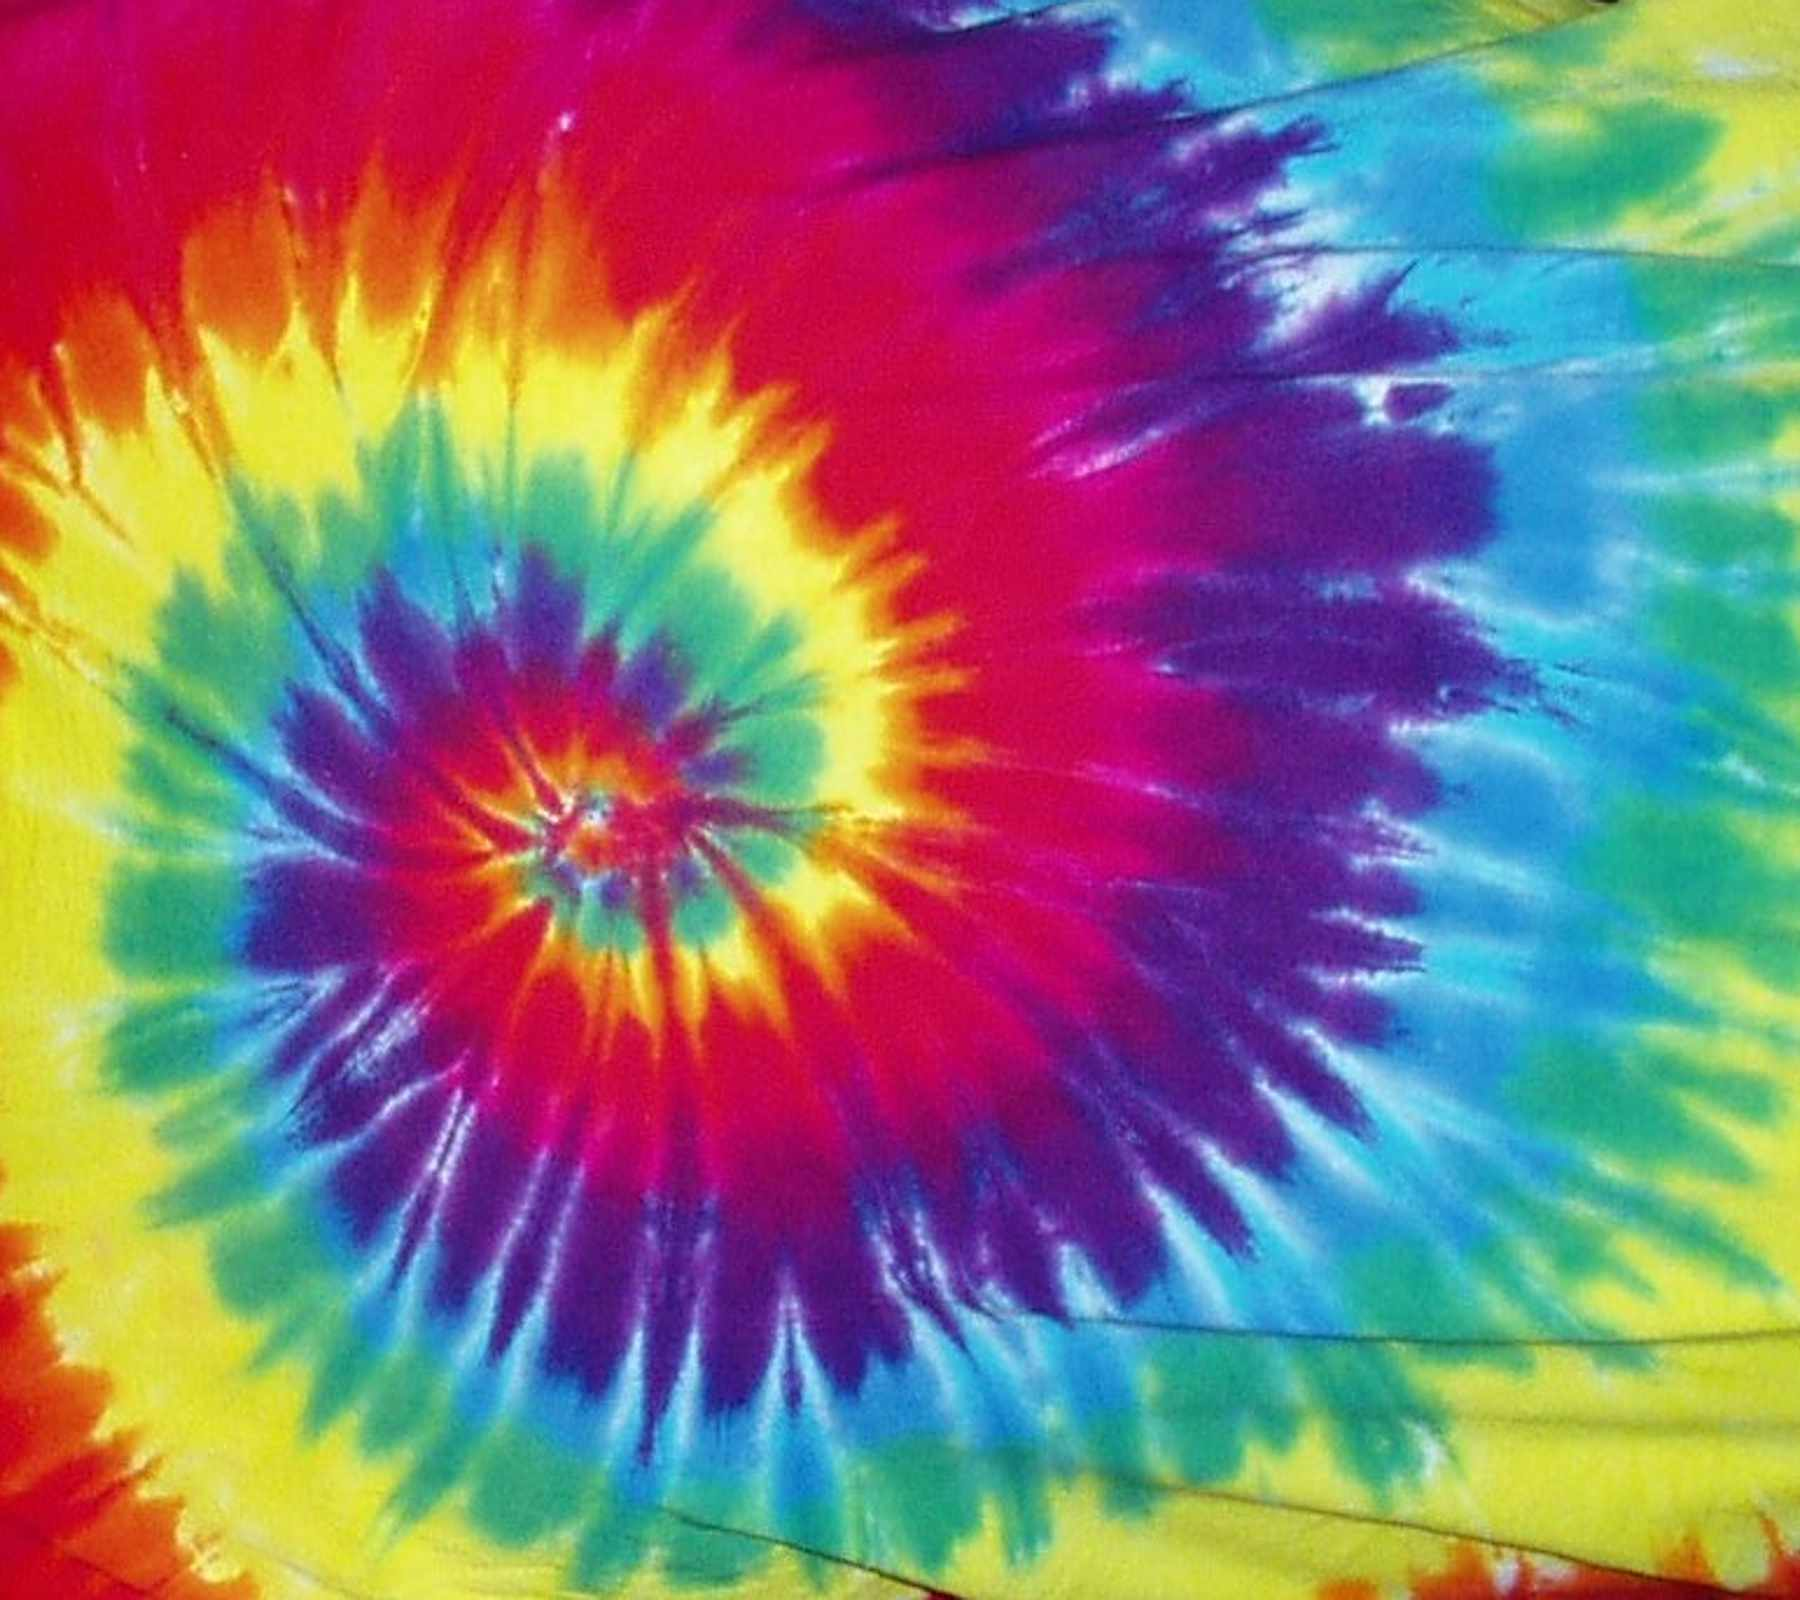 Tie Dye Background - PowerPoint Backgrounds for Free ...